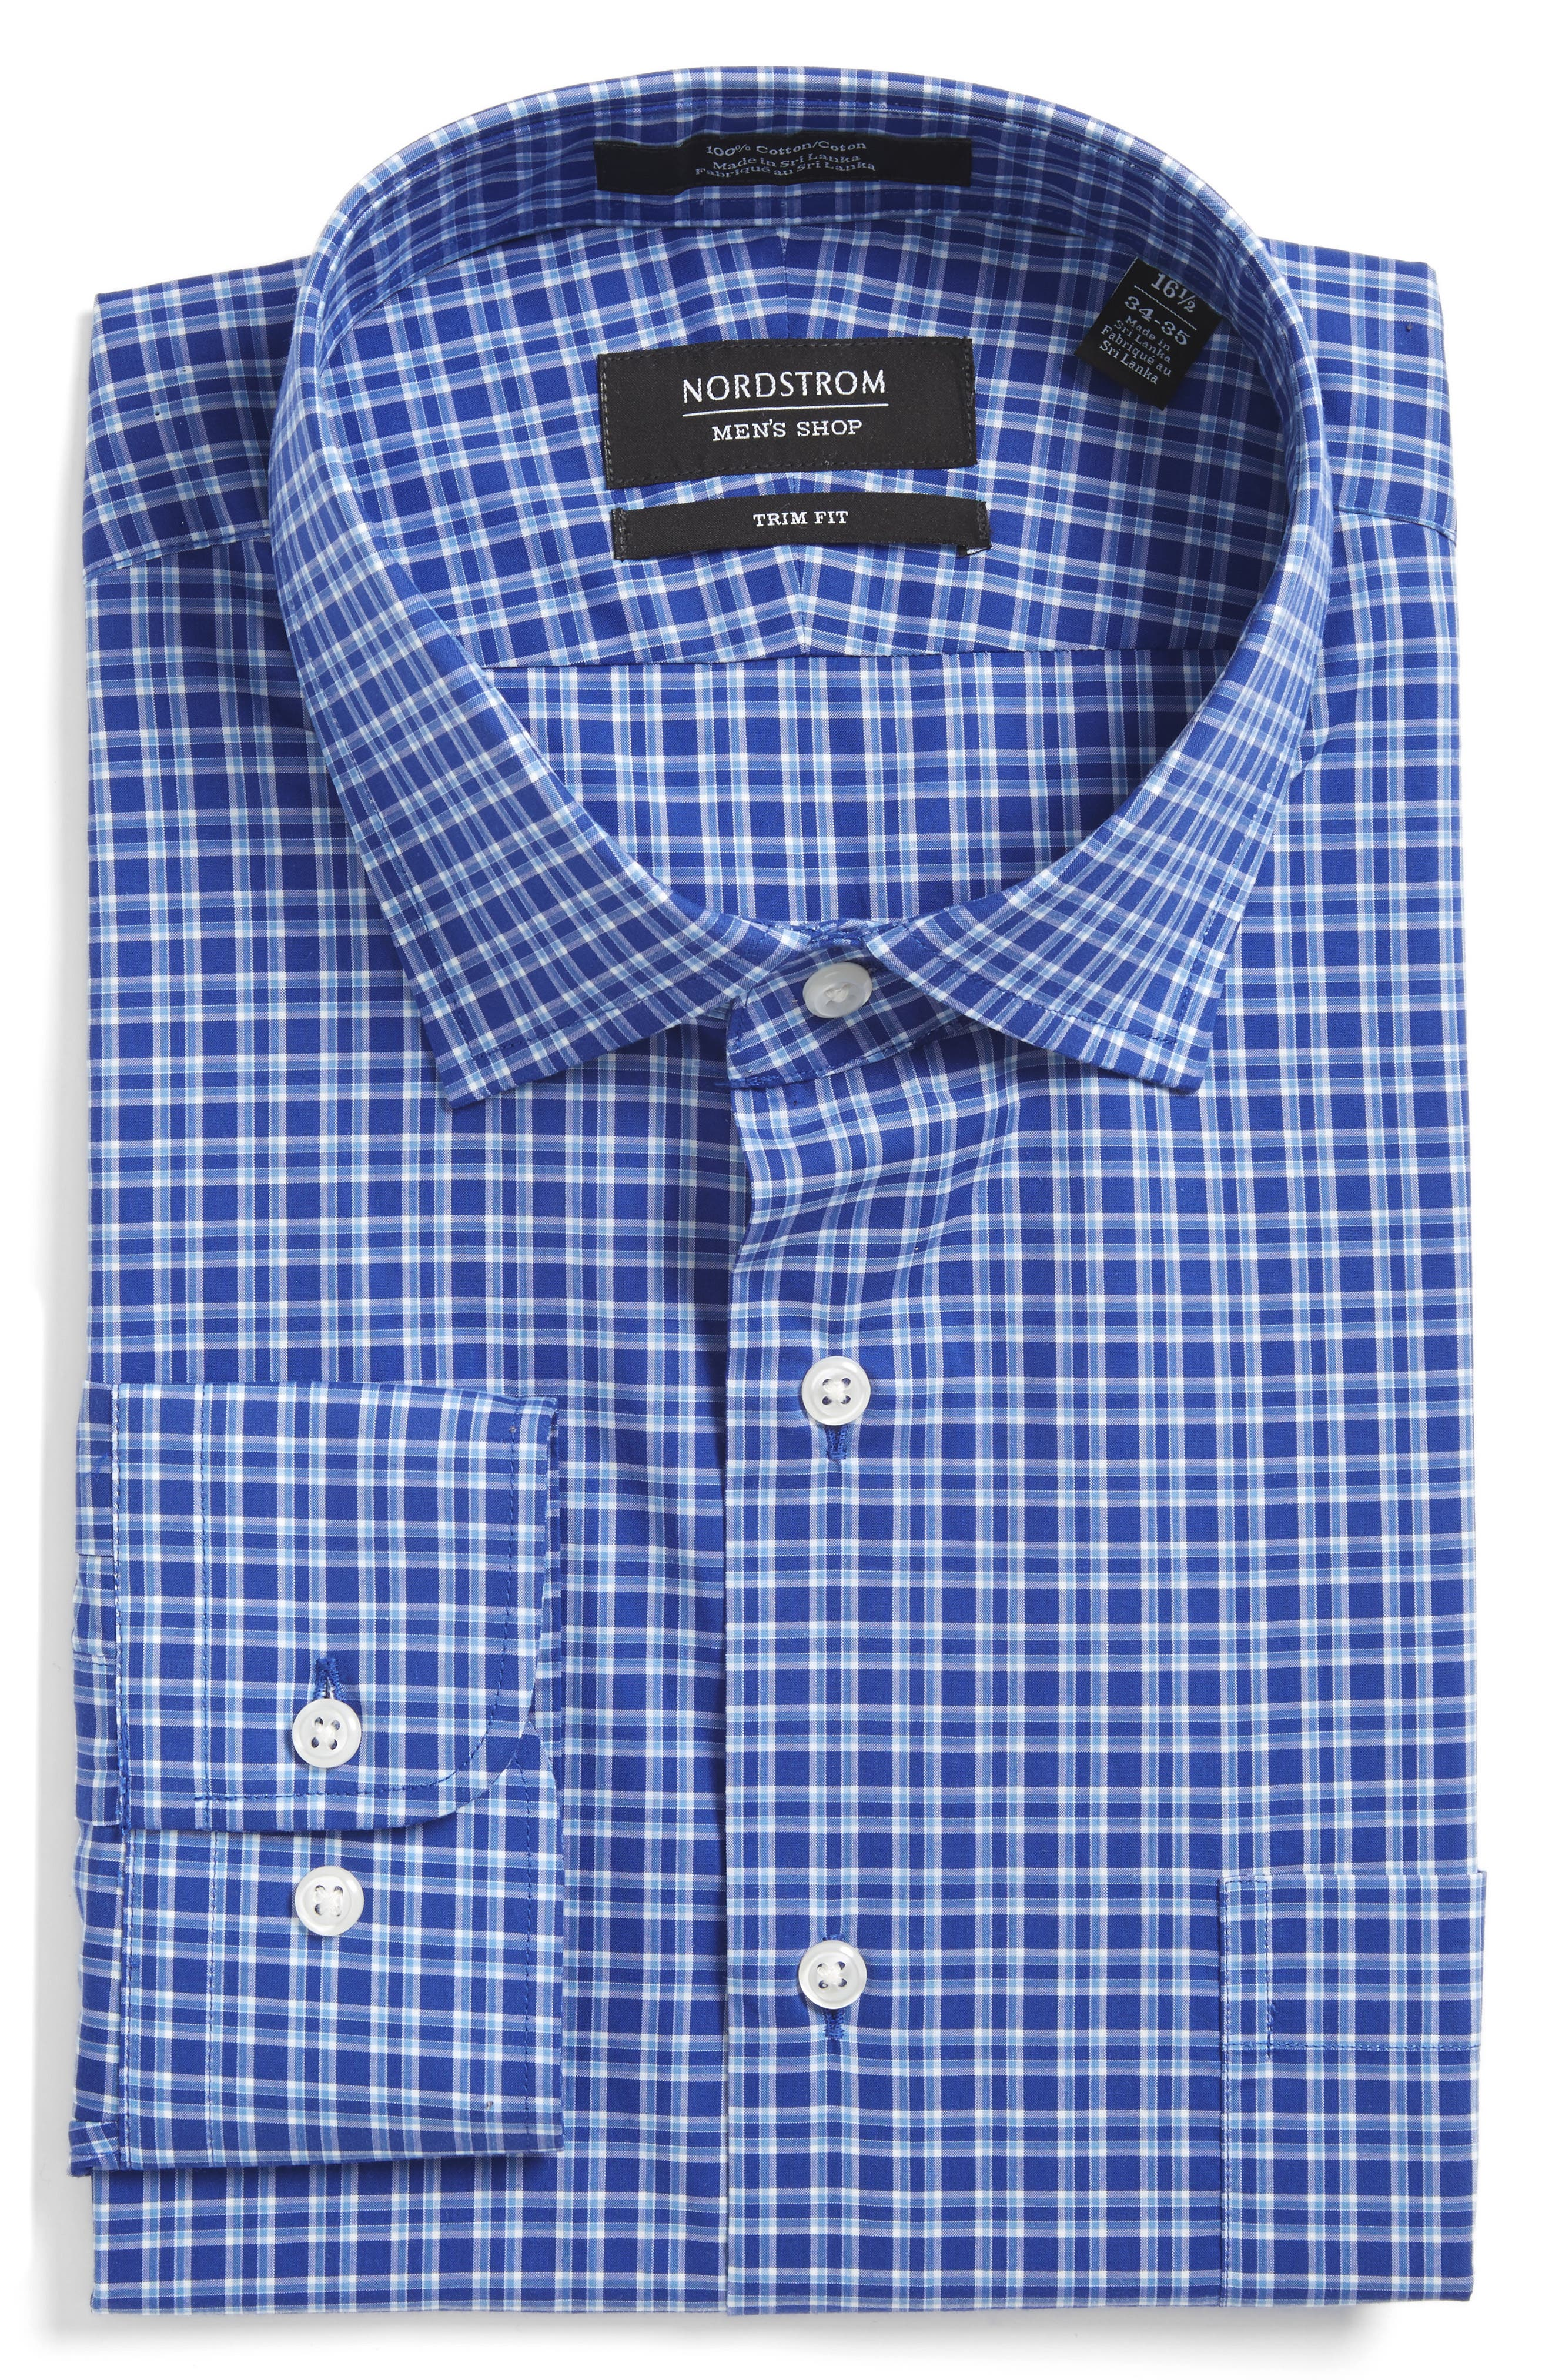 Nordstrom Men's Shop Trim Fit Check Dress Shirt